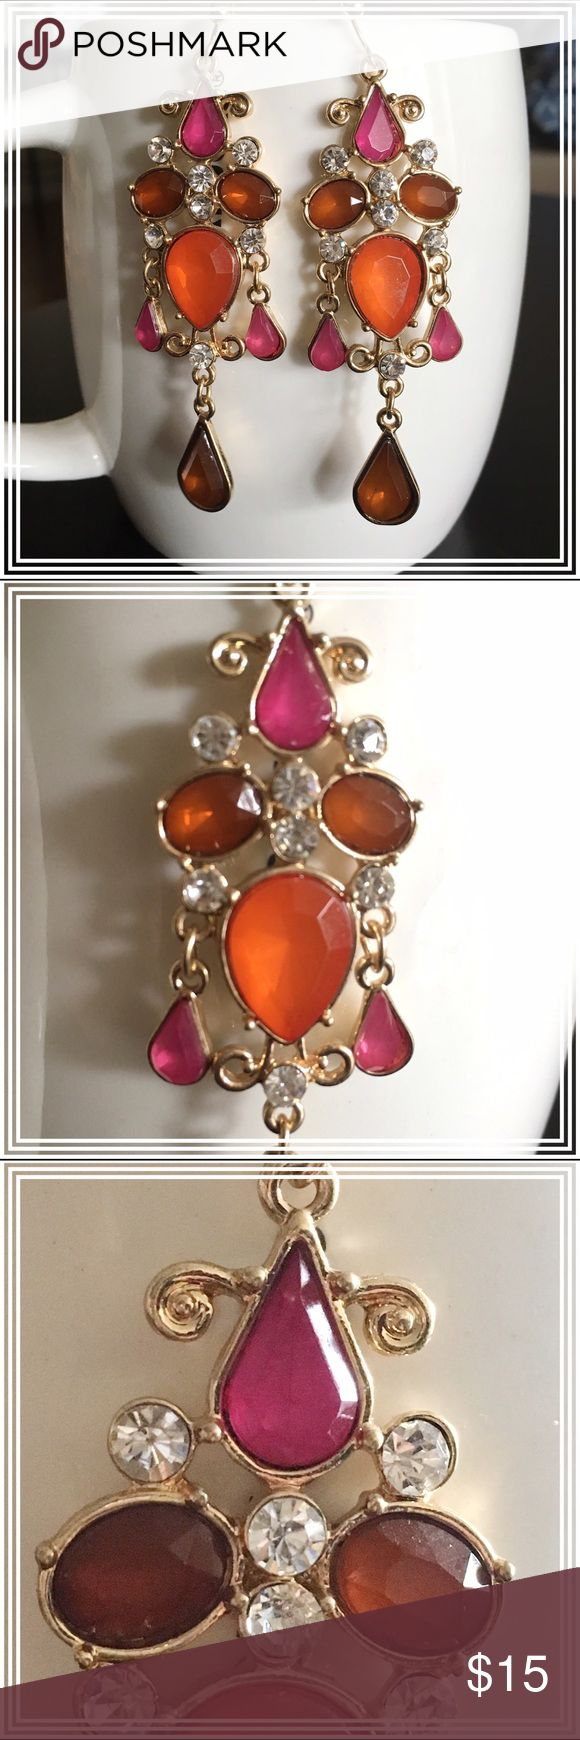 "Pink and orange chandelier dangling earrings NWT earrings (temporarily removed from tag to take pictures), this gorgeous piece is approx. 2.75"" long and bounces light off to really sparkle! The setting is gold tone, and the backs of the earrings are hooked. Boutique Jewelry Earrings"